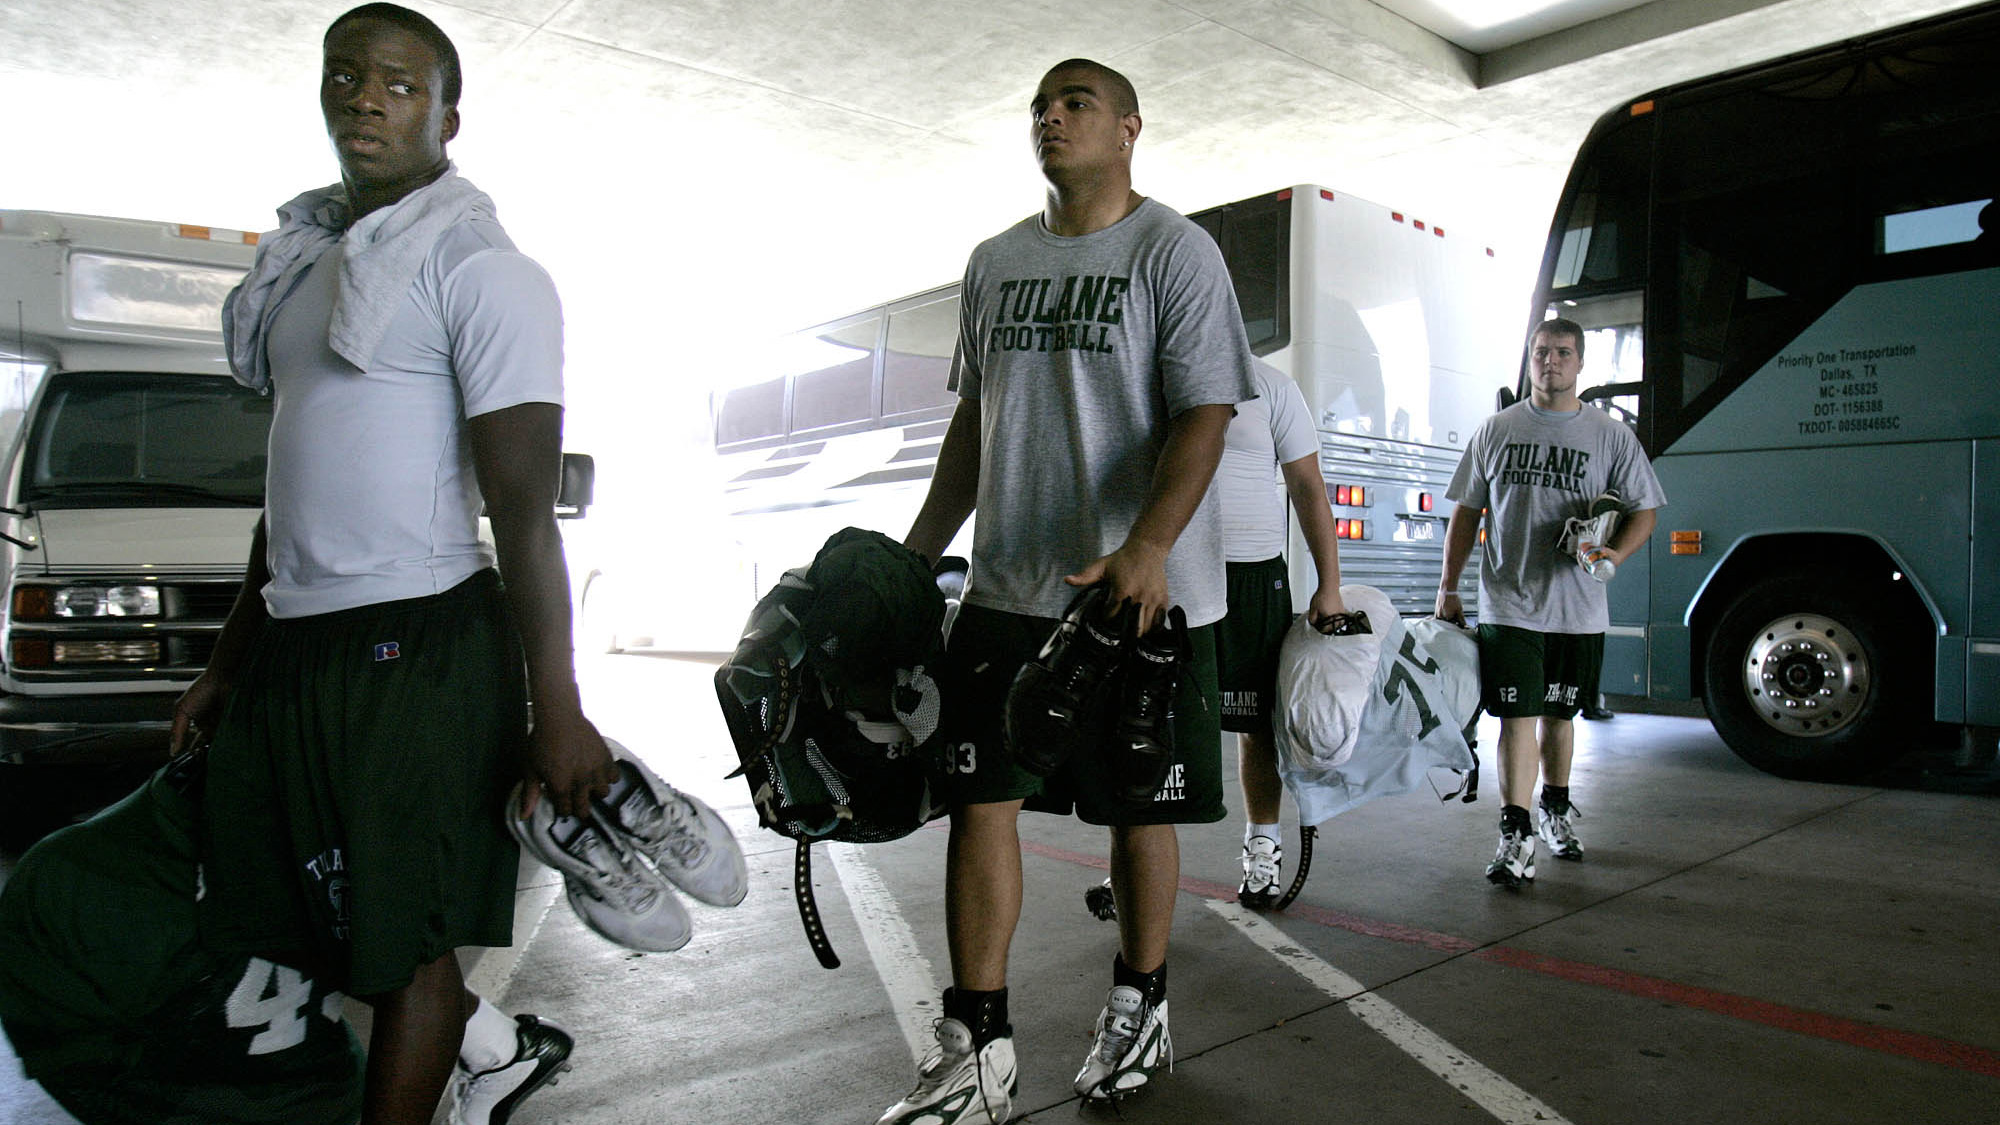 Tulane football players Christian Okoye, left, Taurean Brown, center, and Chris Bordelon, right, arrive at the Doubletree Hotel after a team practice in Dallas, Tuesday, Sept. 5, 2005.